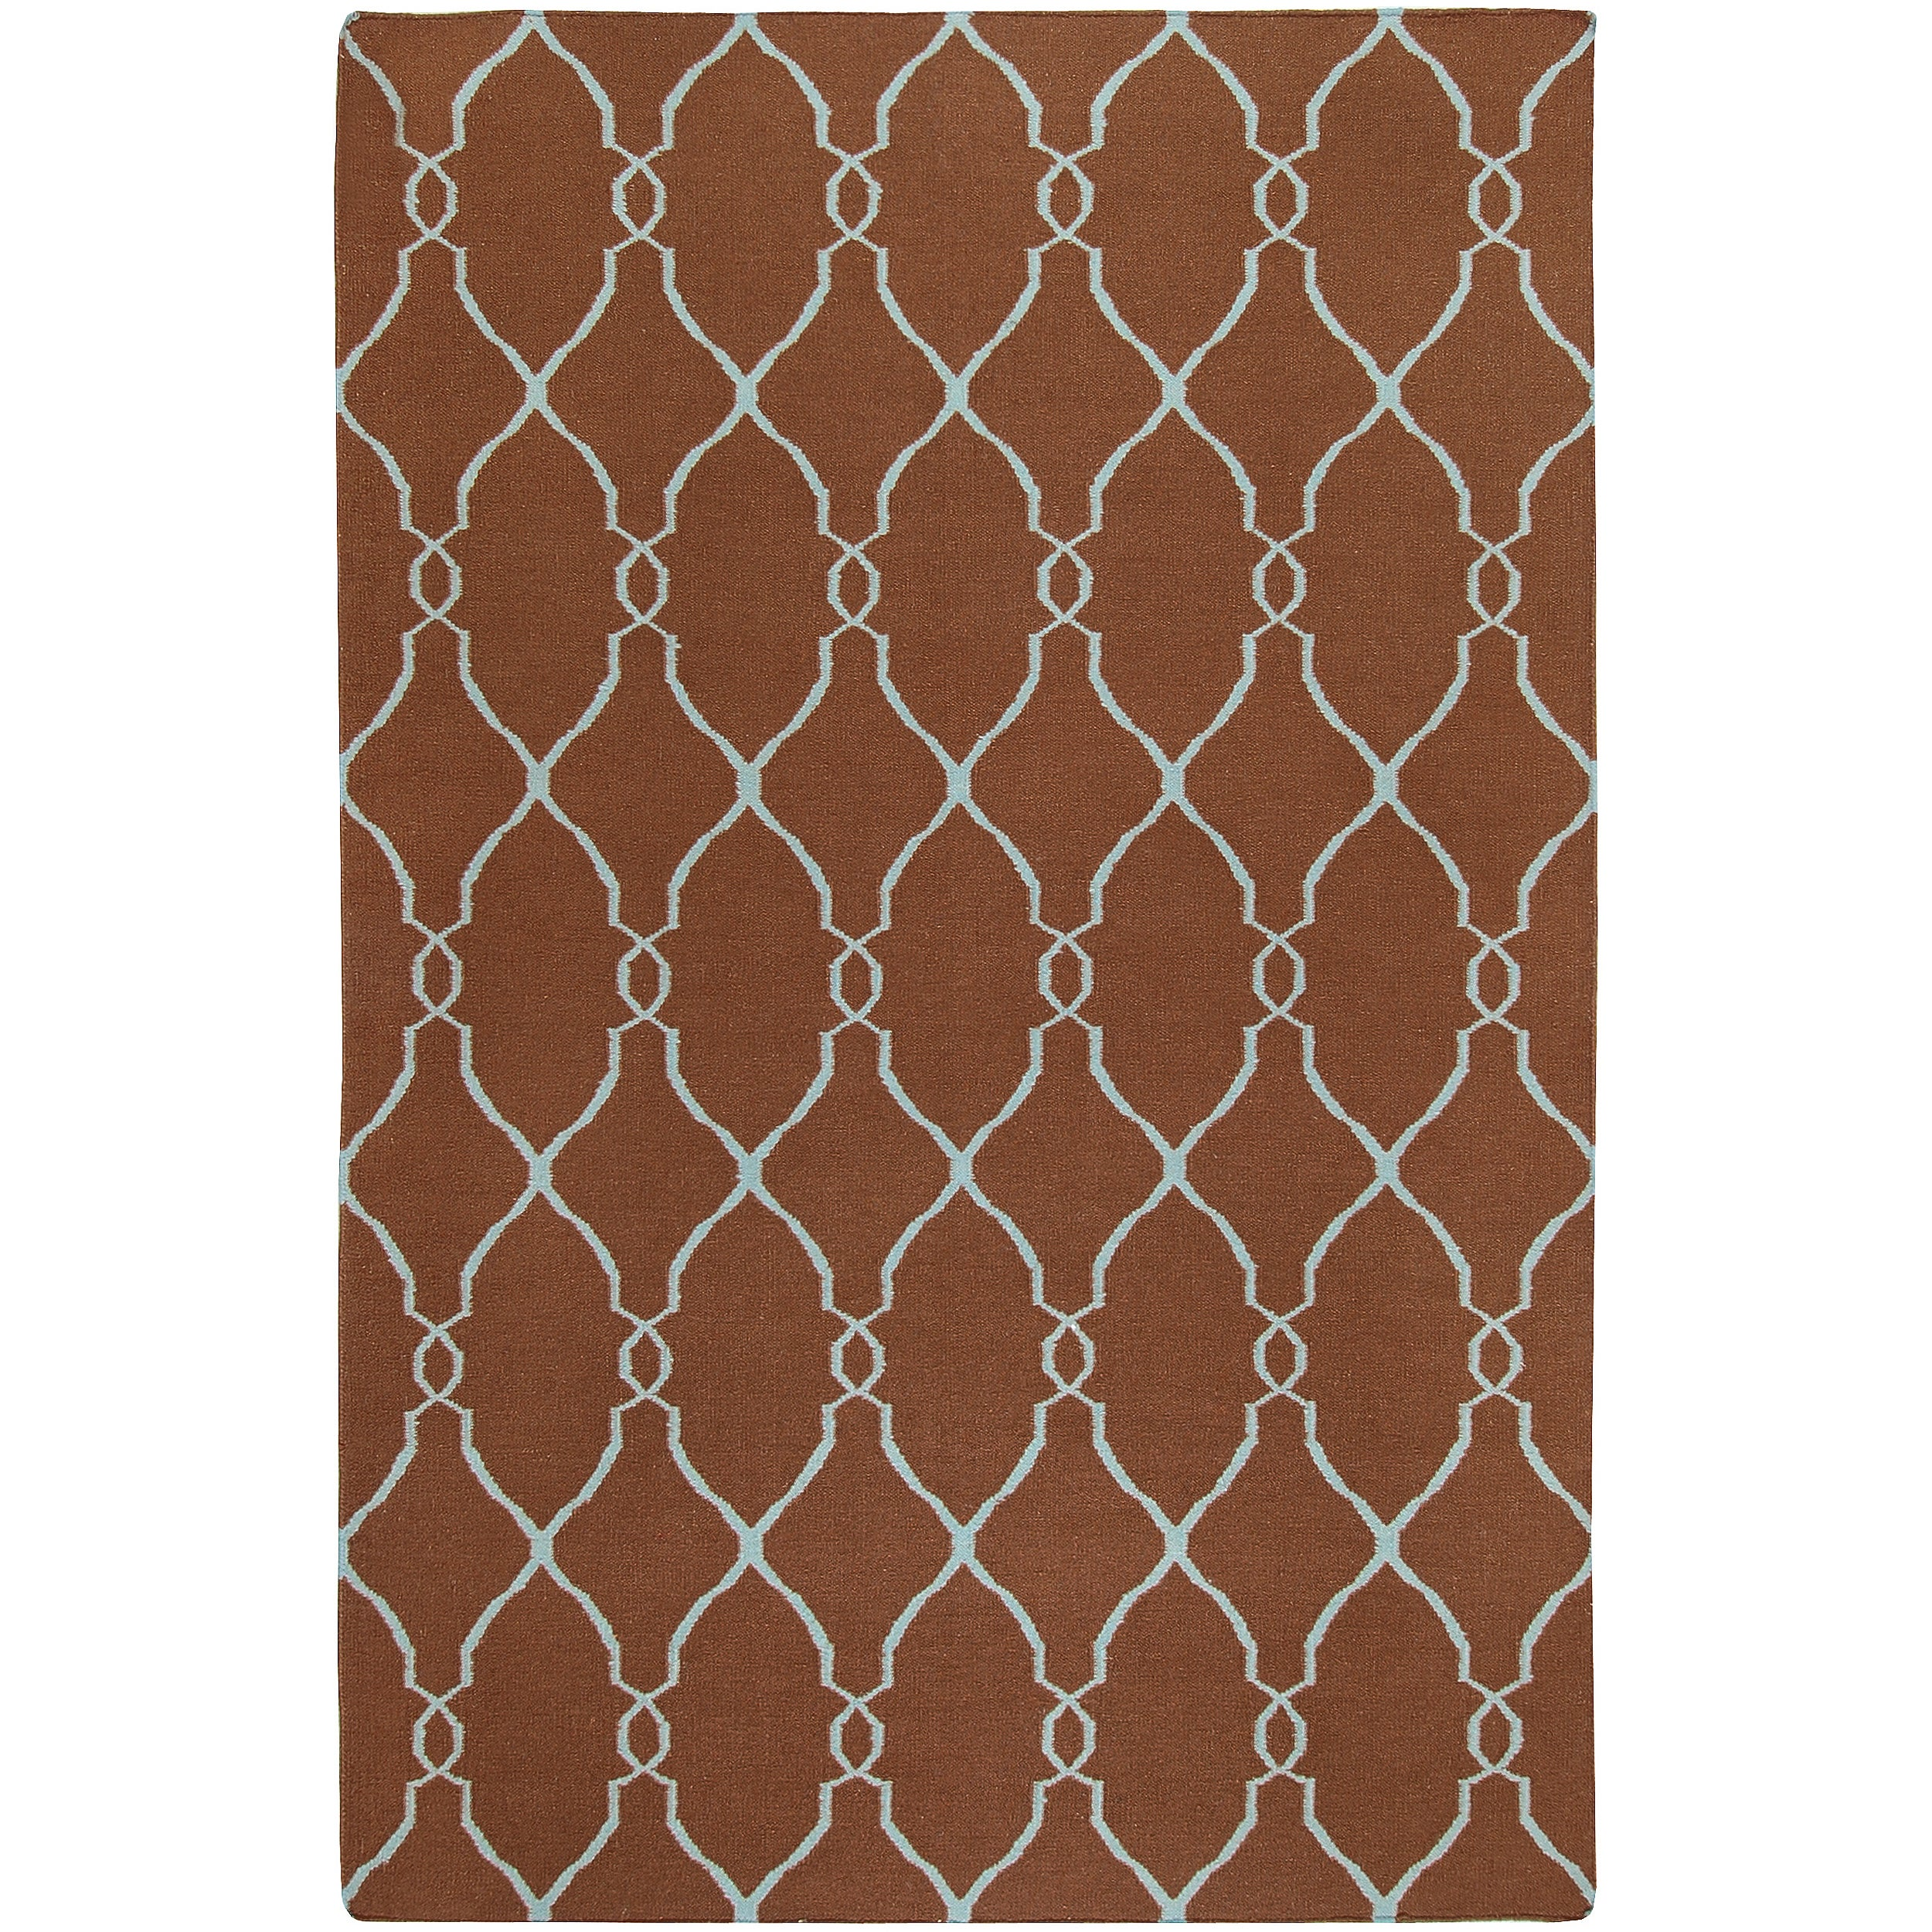 Hand-woven Brown Rhodes Wool Area Rug - 9' x 13'